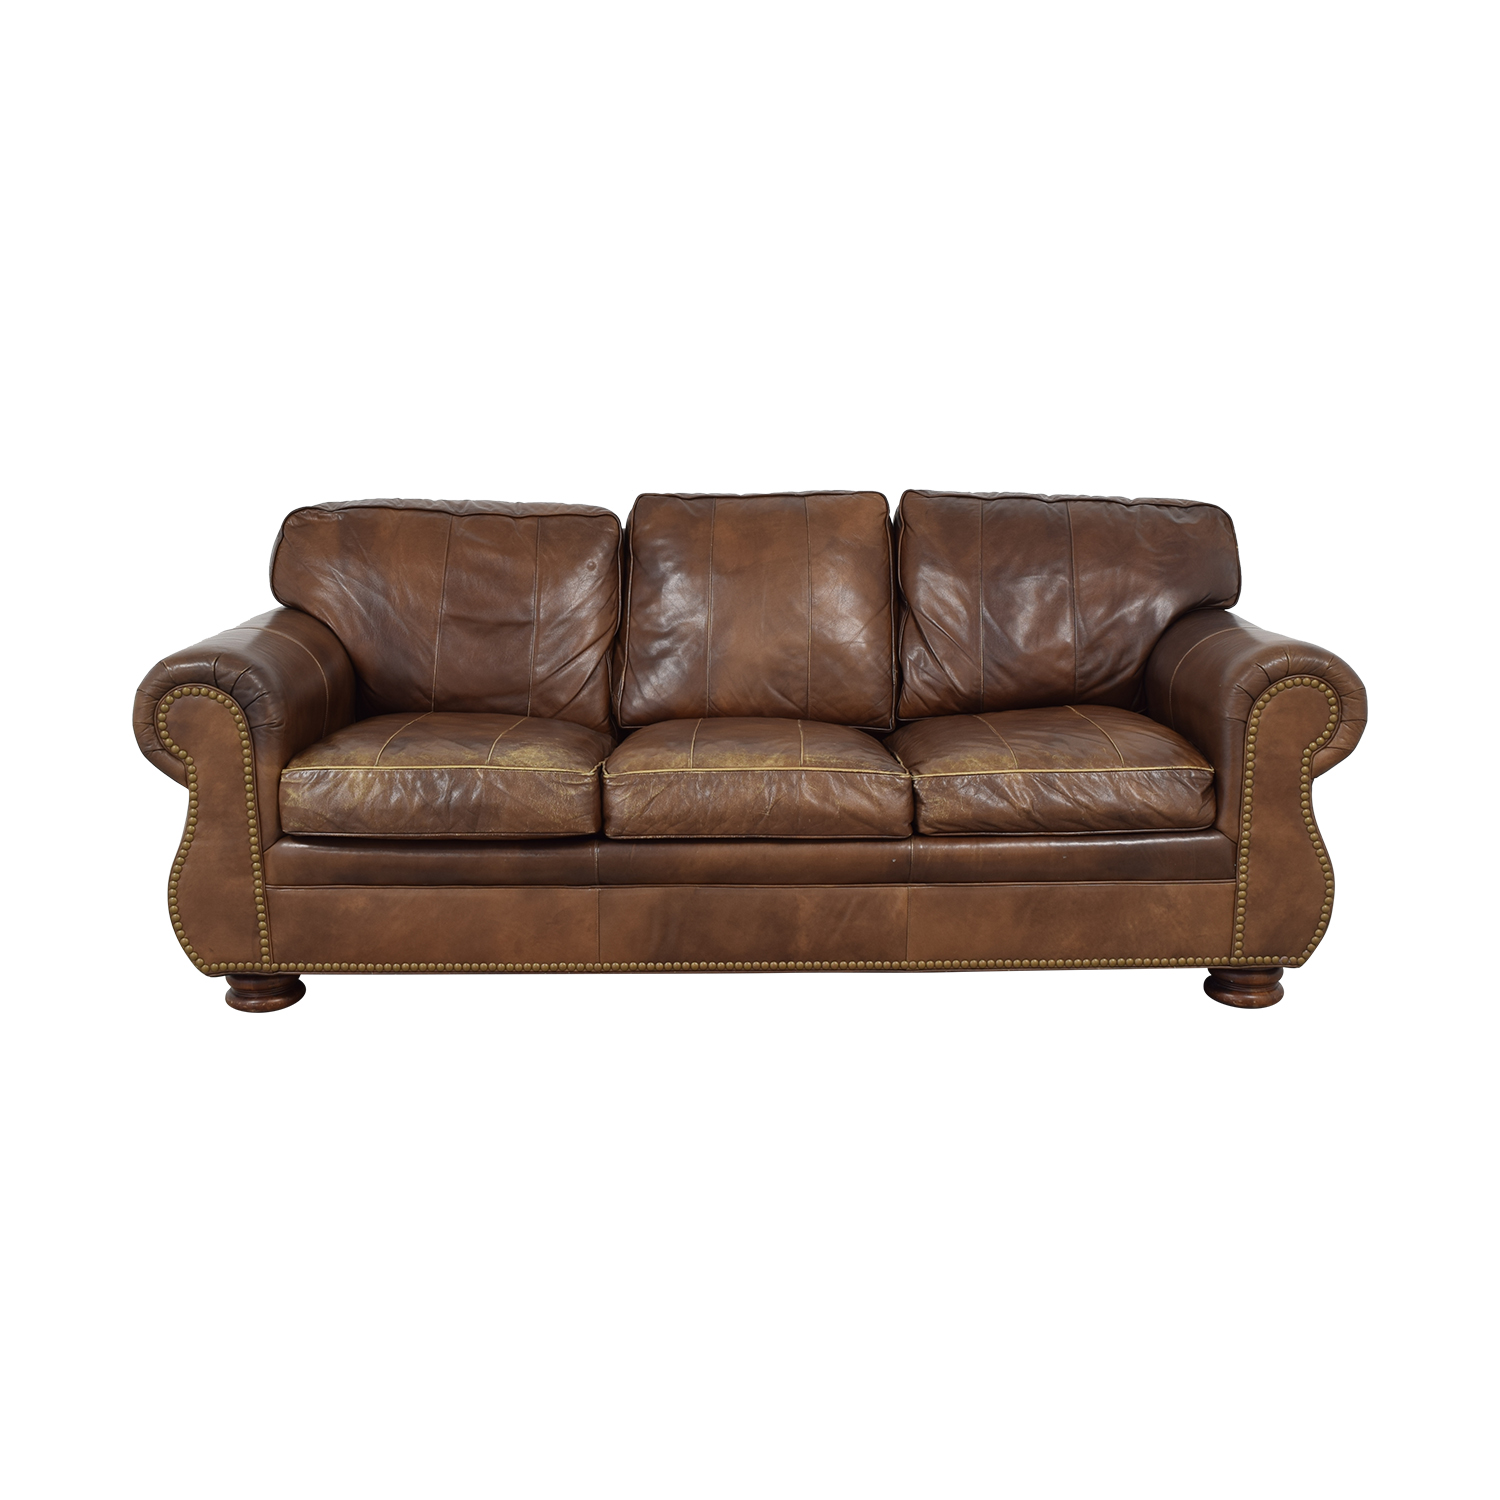 buy Hancock and Moore Nailhead Sofa Hancock and Moore